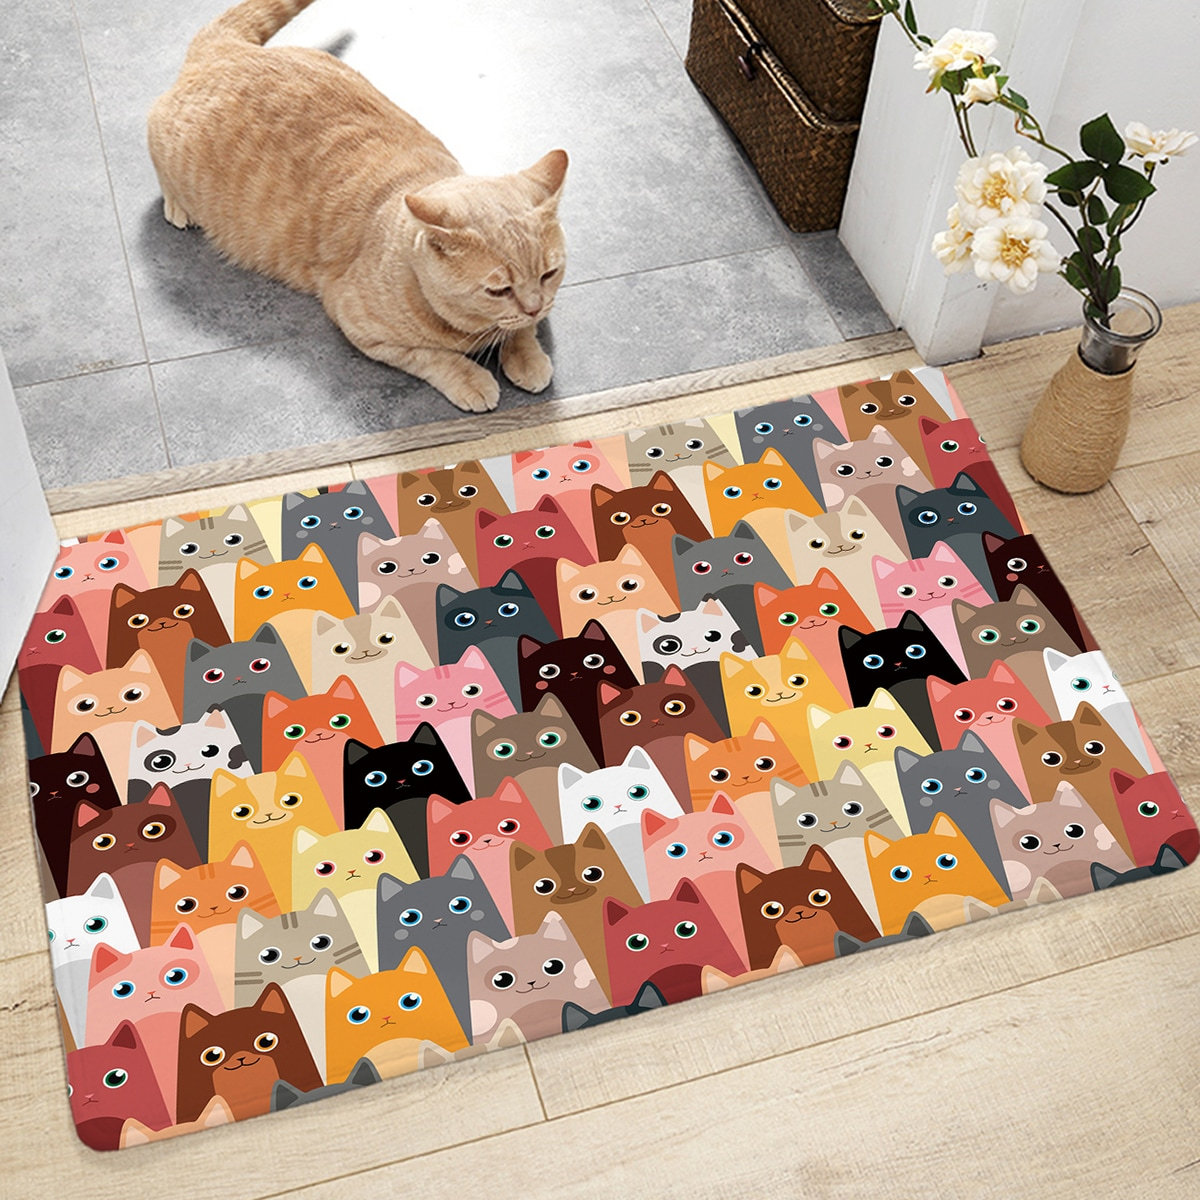 Cartoon Cat Pattern Floor Mat